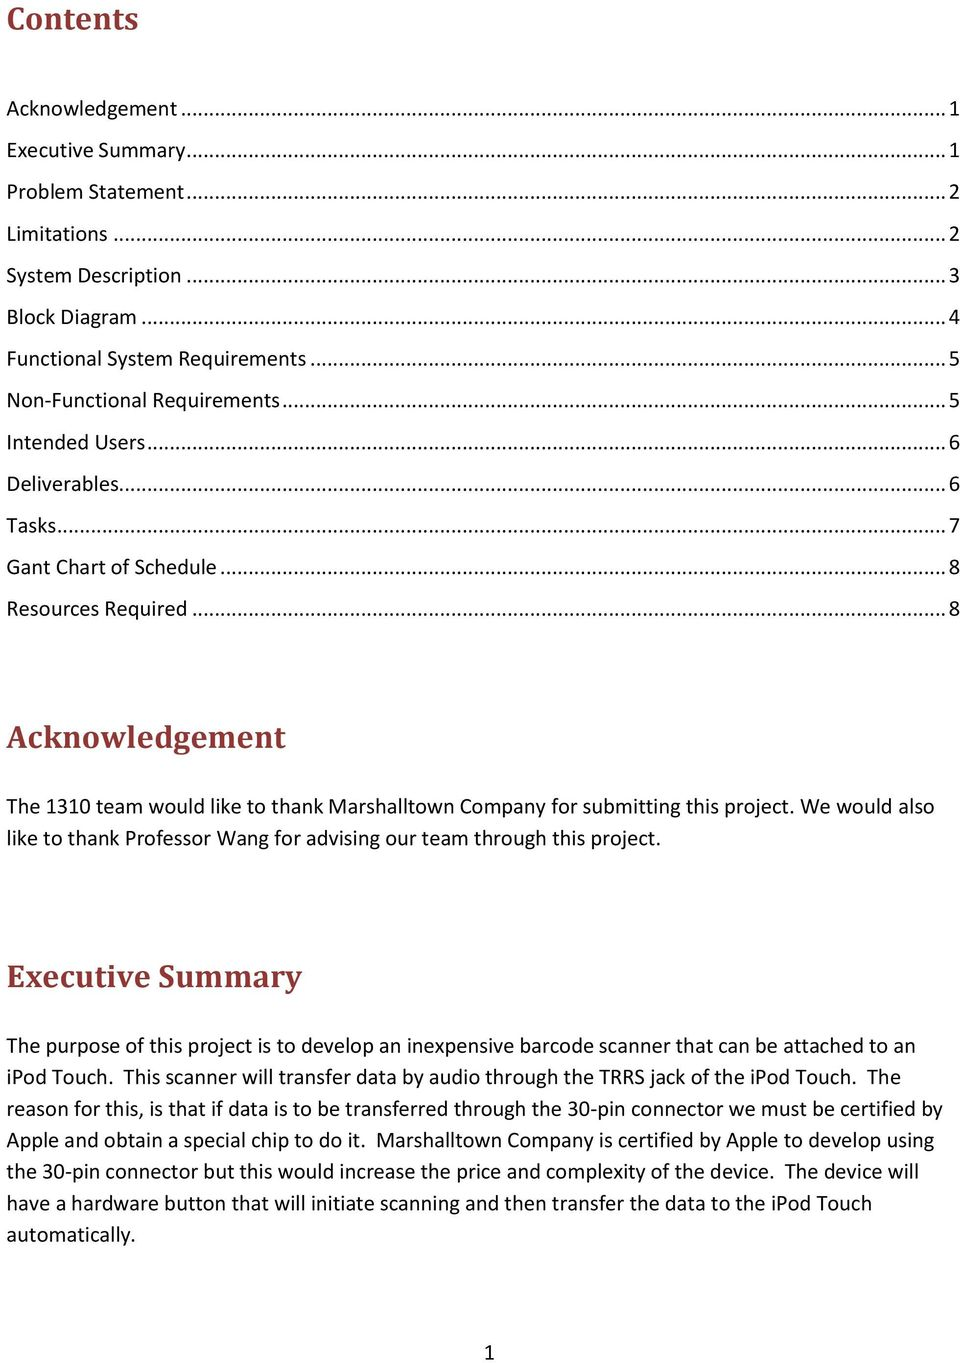 .. 8 Acknowledgement The 1310 team would like to thank Marshalltown Company for submitting this project. We would also like to thank Professor Wang for advising our team through this project.